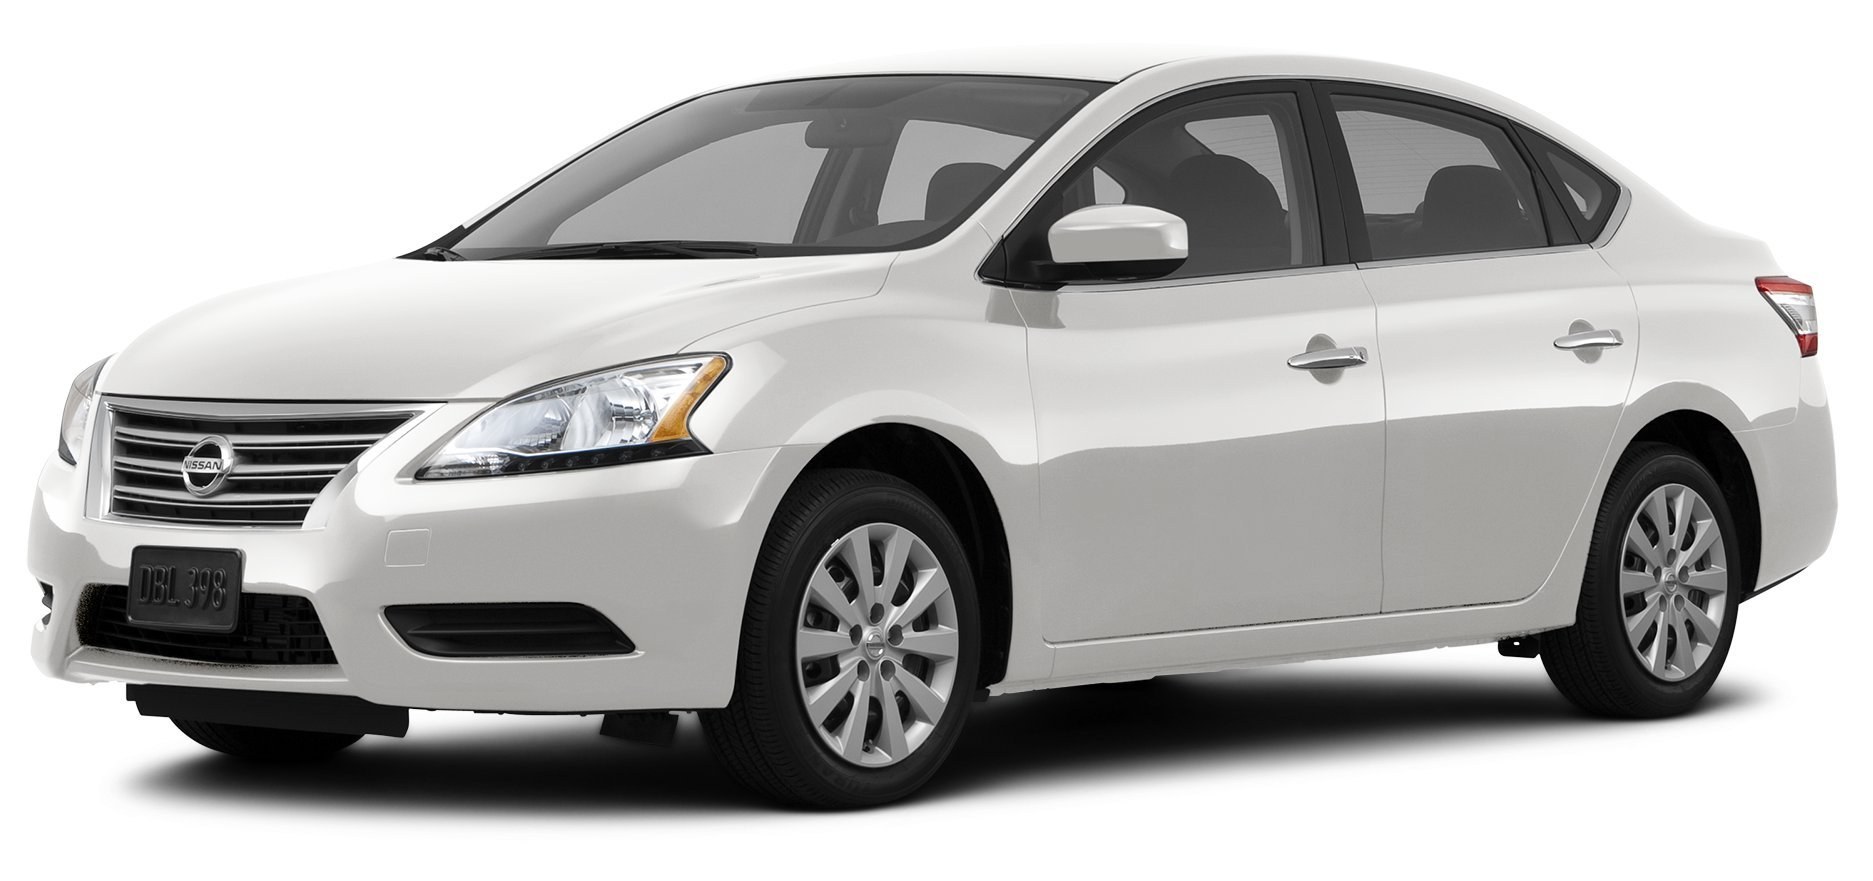 Beautiful 2013 Nissan Sentra FE+ S, 4 Door Sedan 4 Cylinder CVT ...